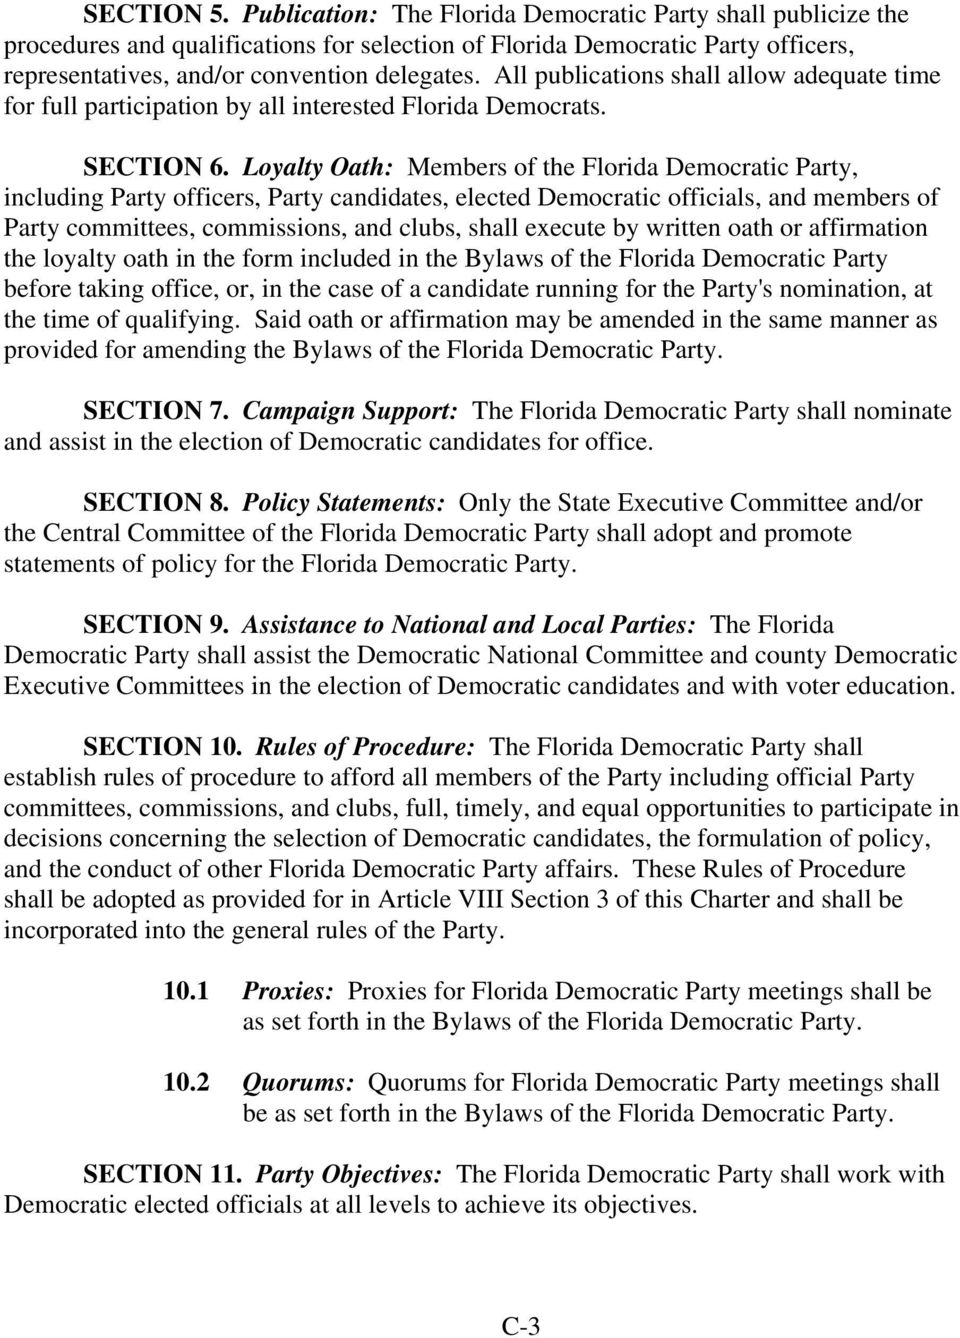 Loyalty Oath: Members of the Florida Democratic Party, including Party officers, Party candidates, elected Democratic officials, and members of Party committees, commissions, and clubs, shall execute